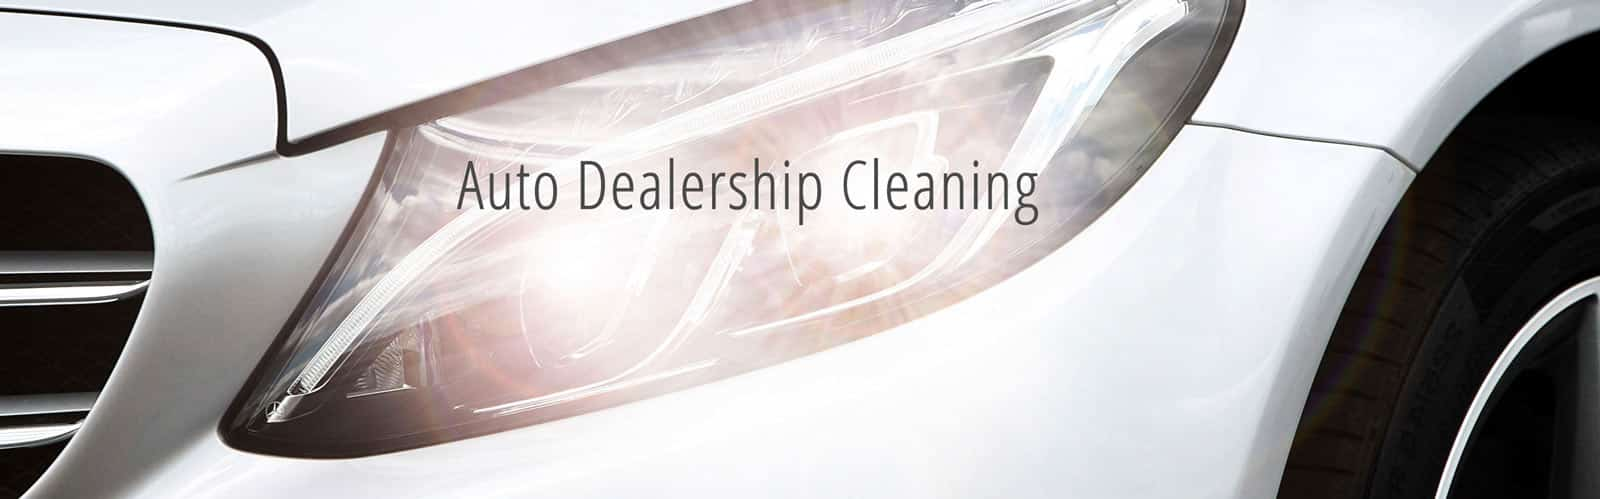 Auto Dealership Cleaning Services - Pittsburgh